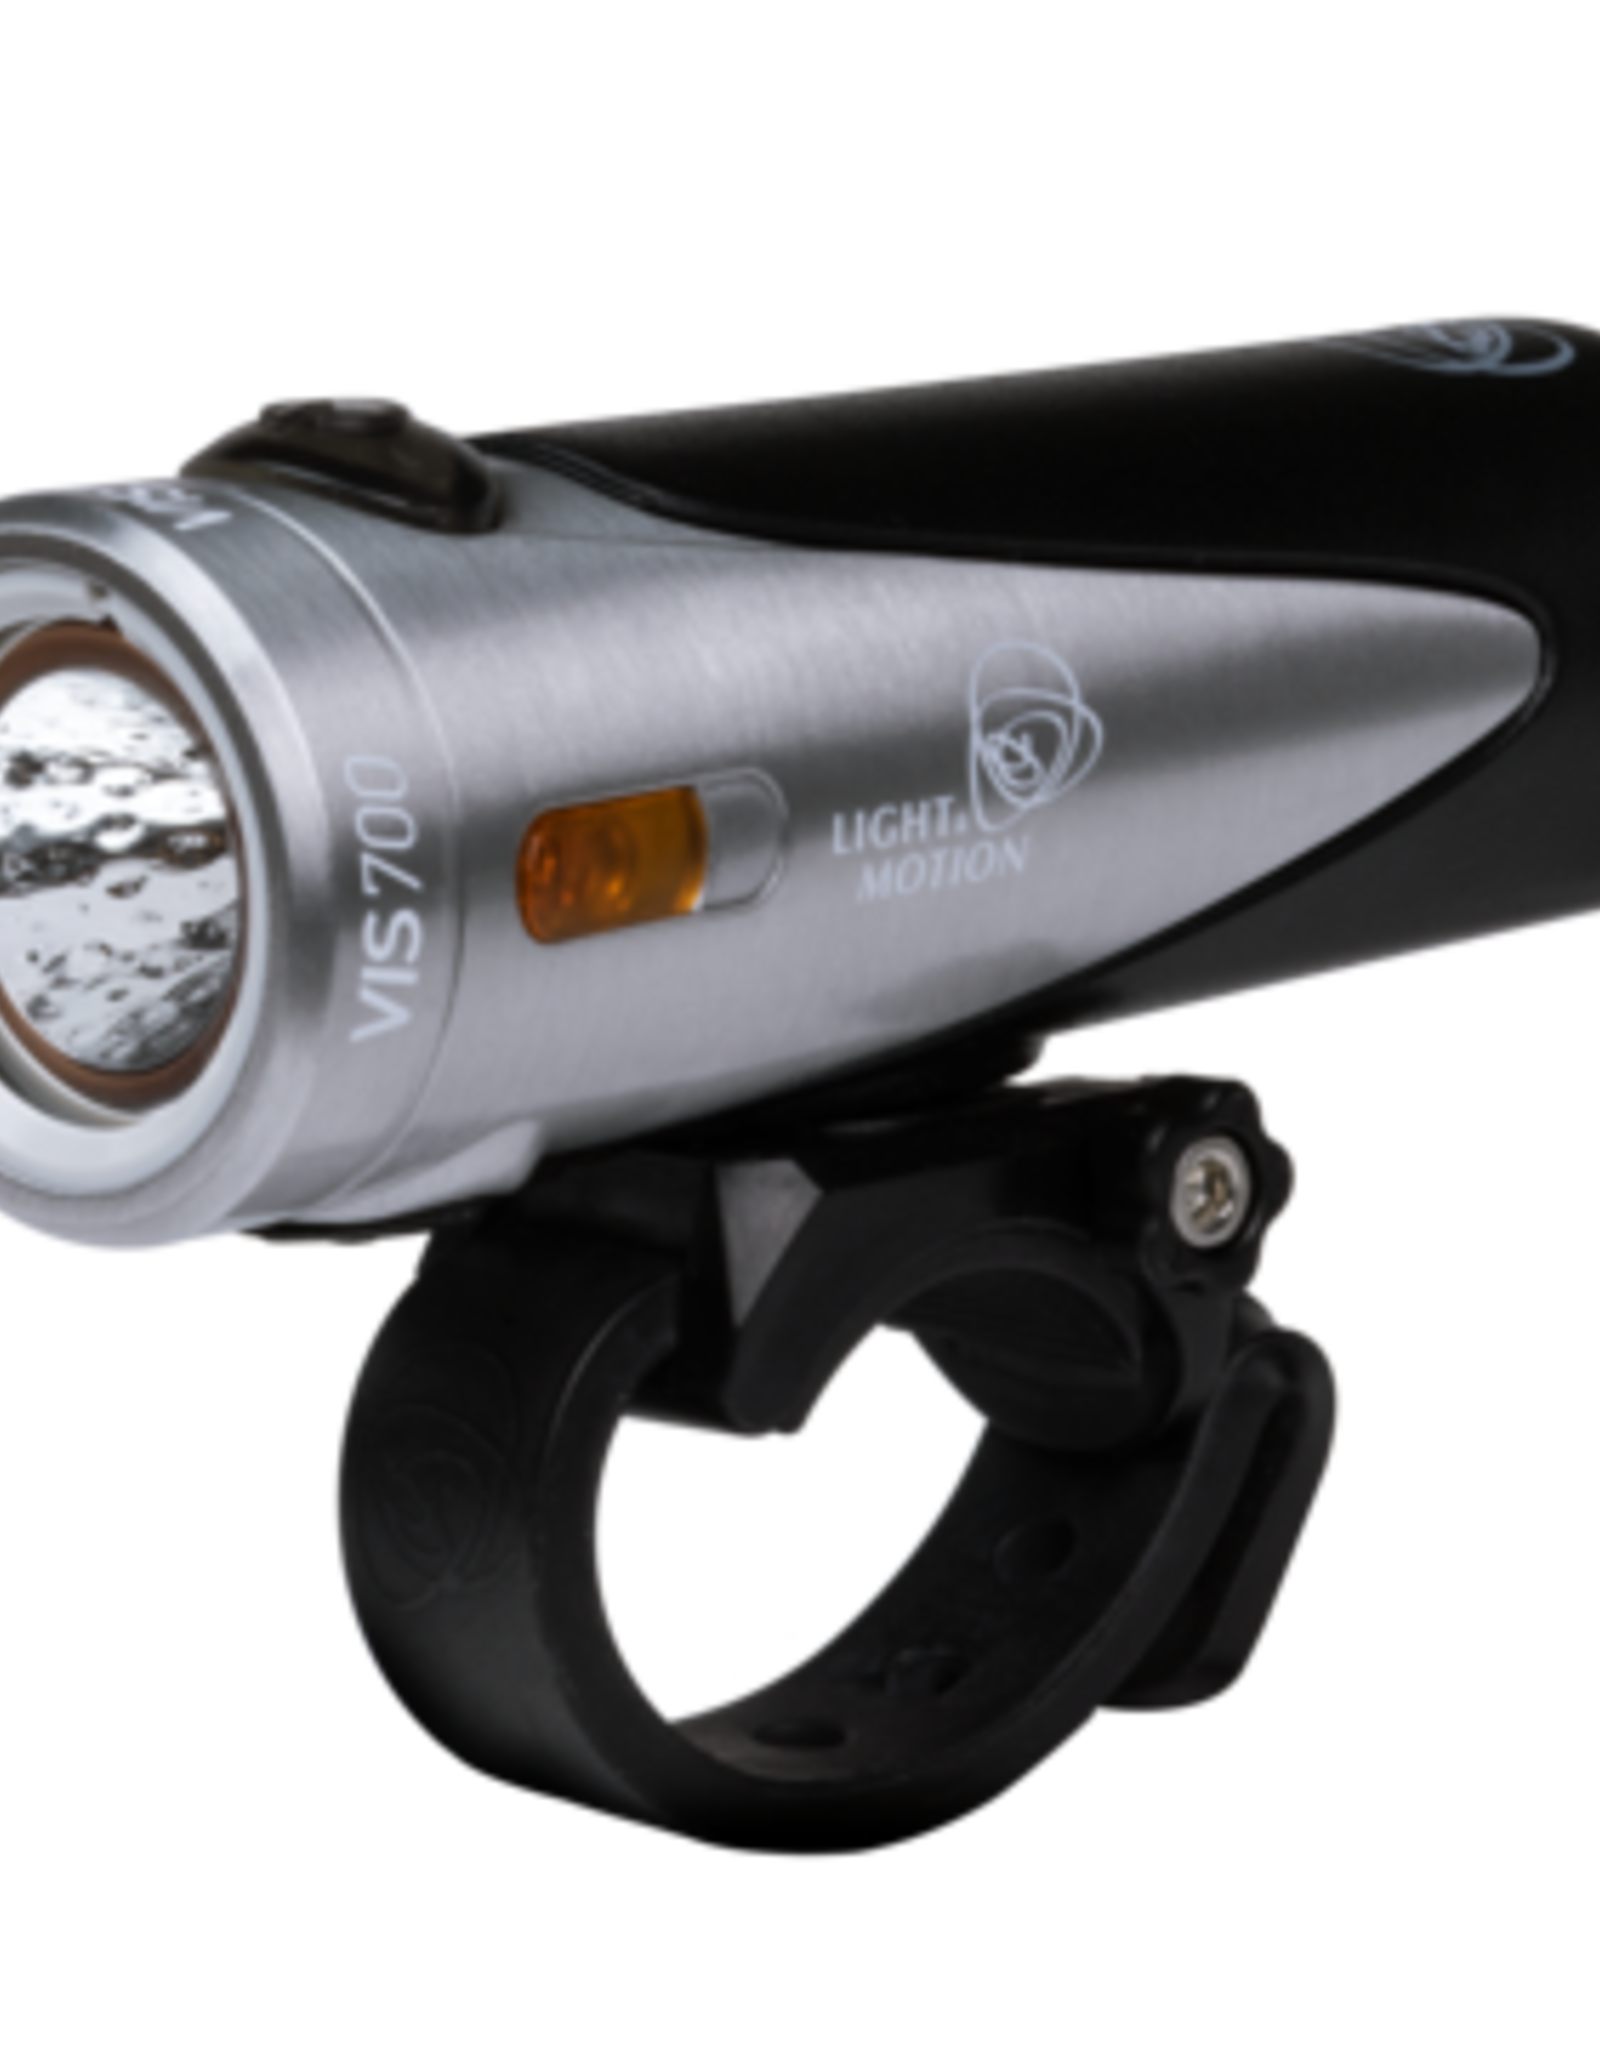 Light and Motion Light and Motion VIS 700 Rechargeable Headlight: Tundra Steel/Black